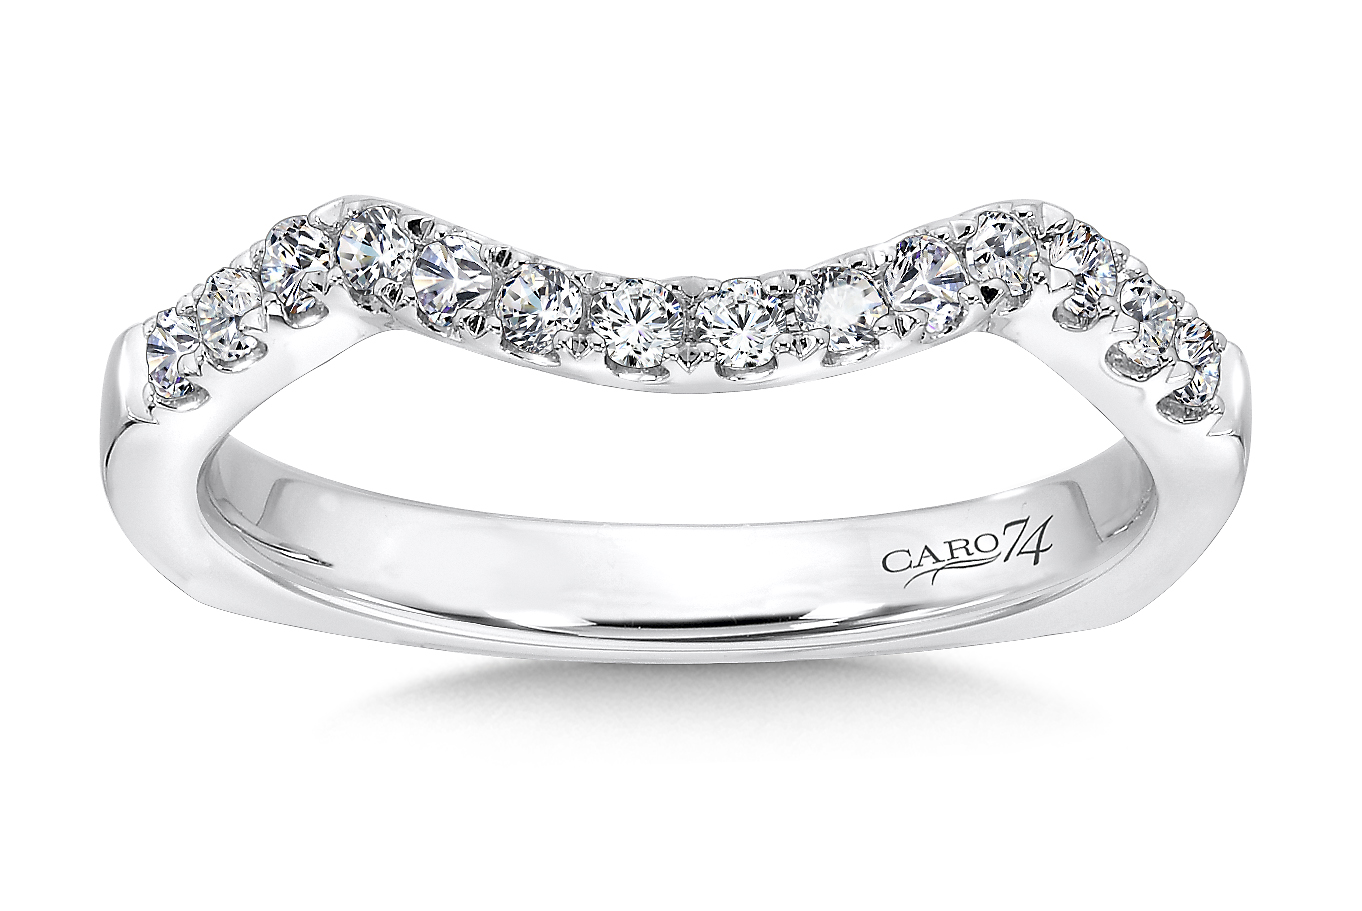 Wholesale Custom Engagement Rings in Dallas 1